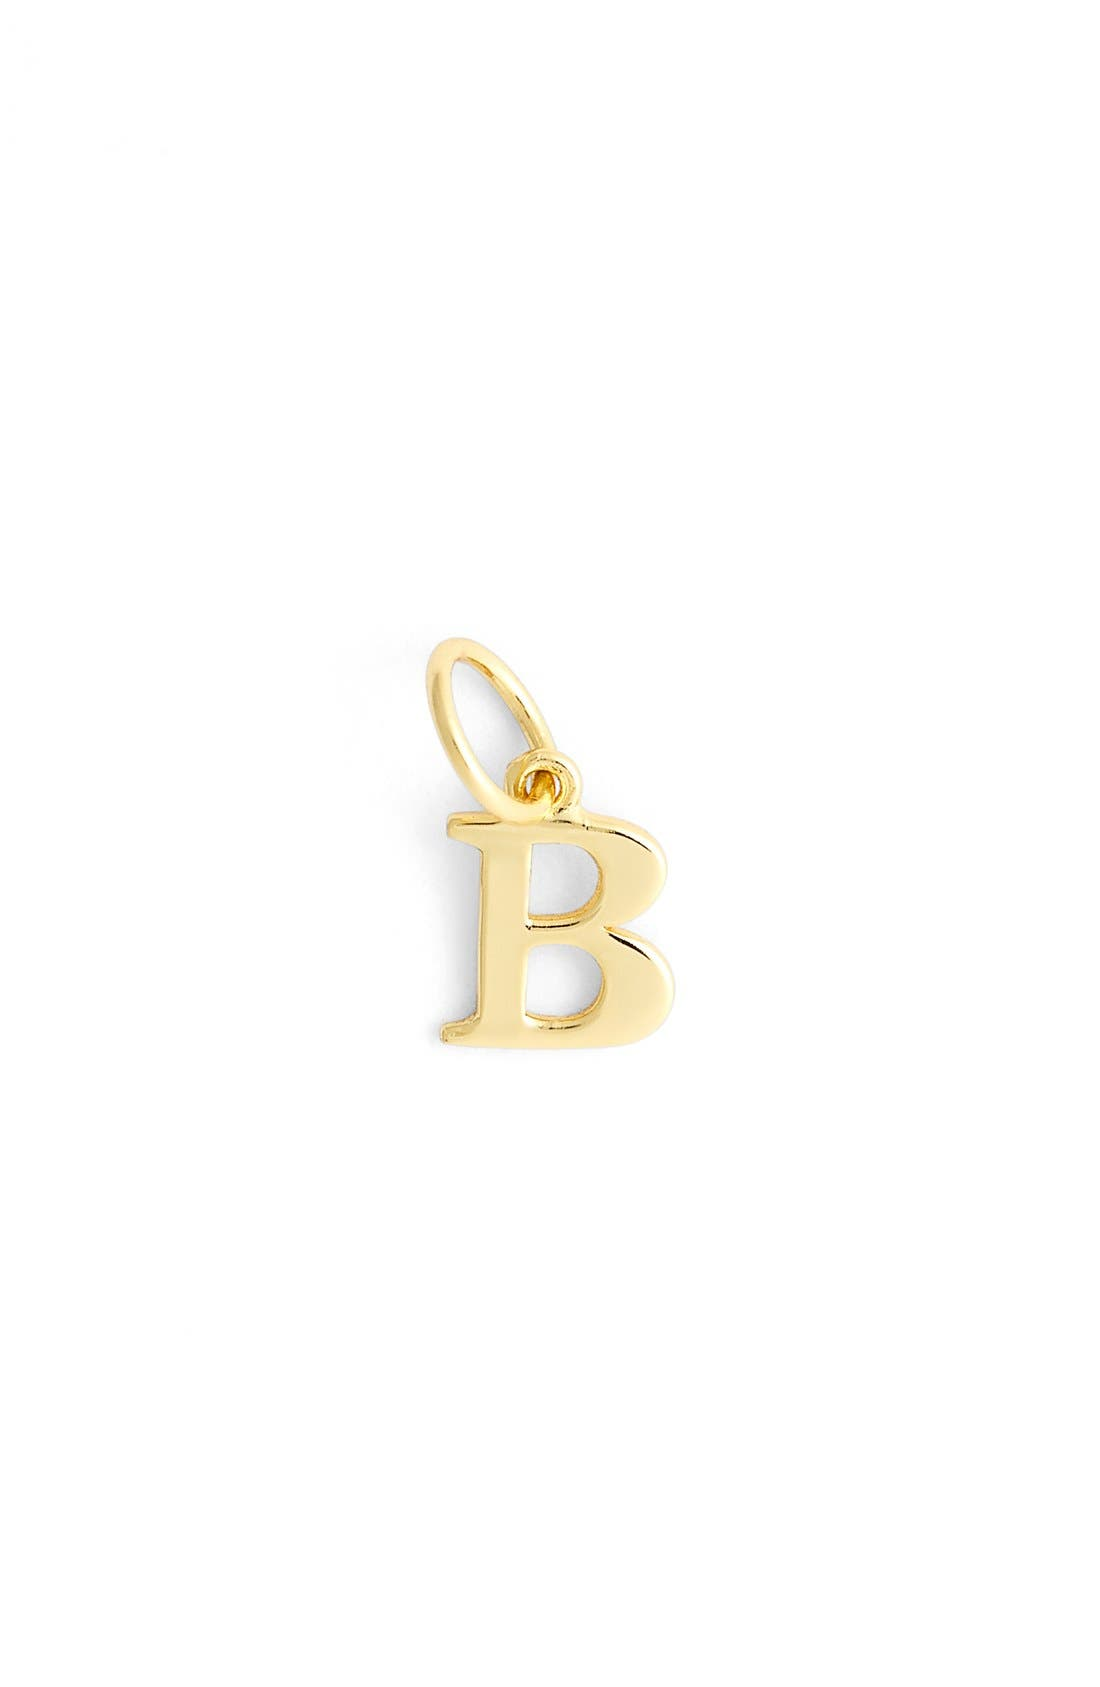 Image of Argento Vivo Initial Charm